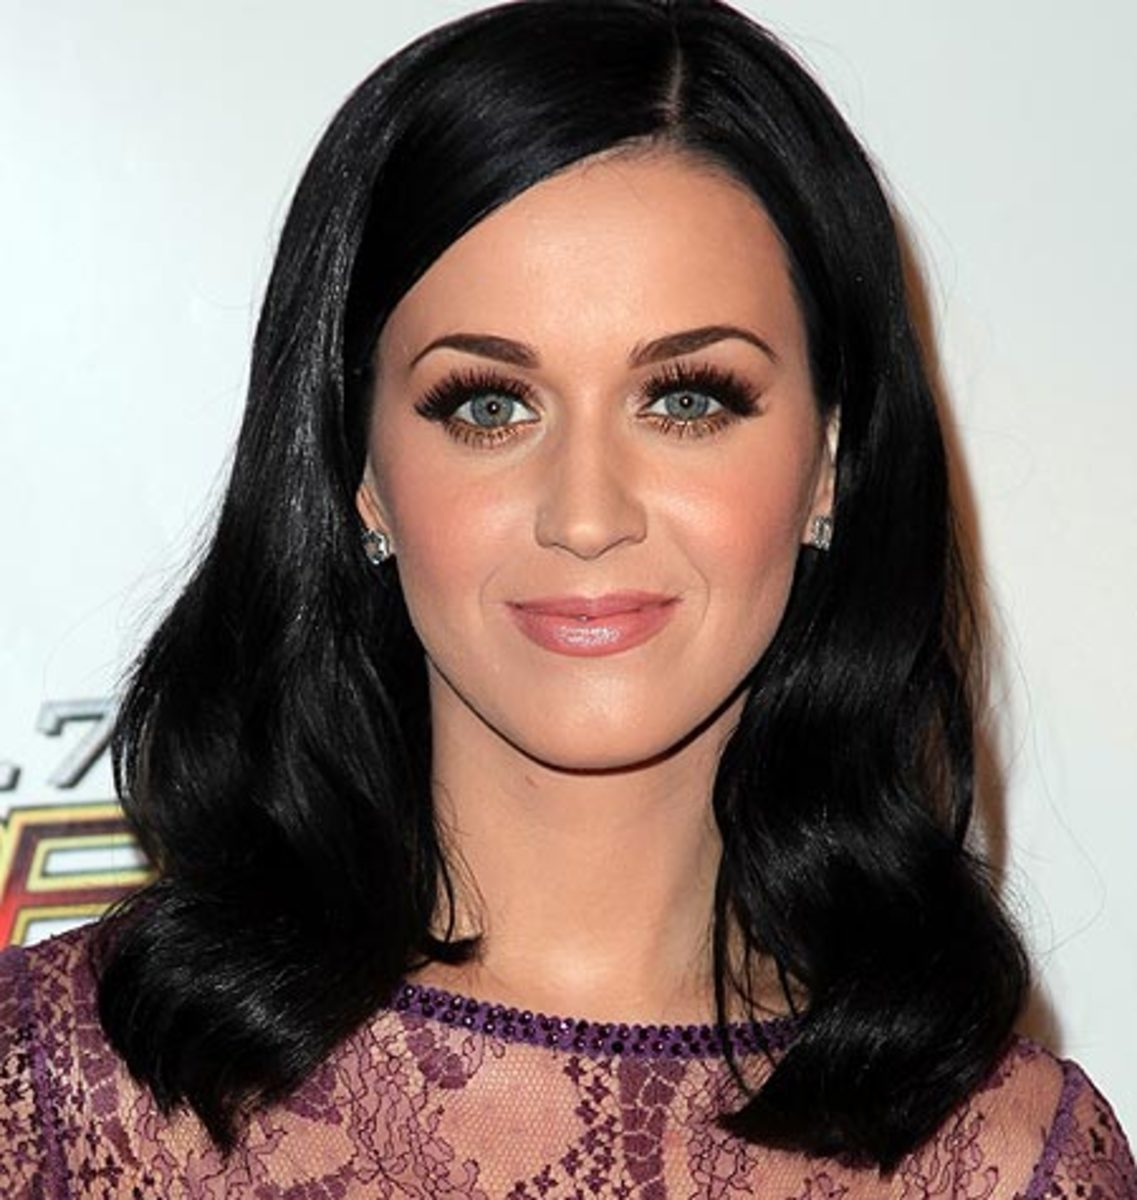 Katy Perry in a purple lace shirt